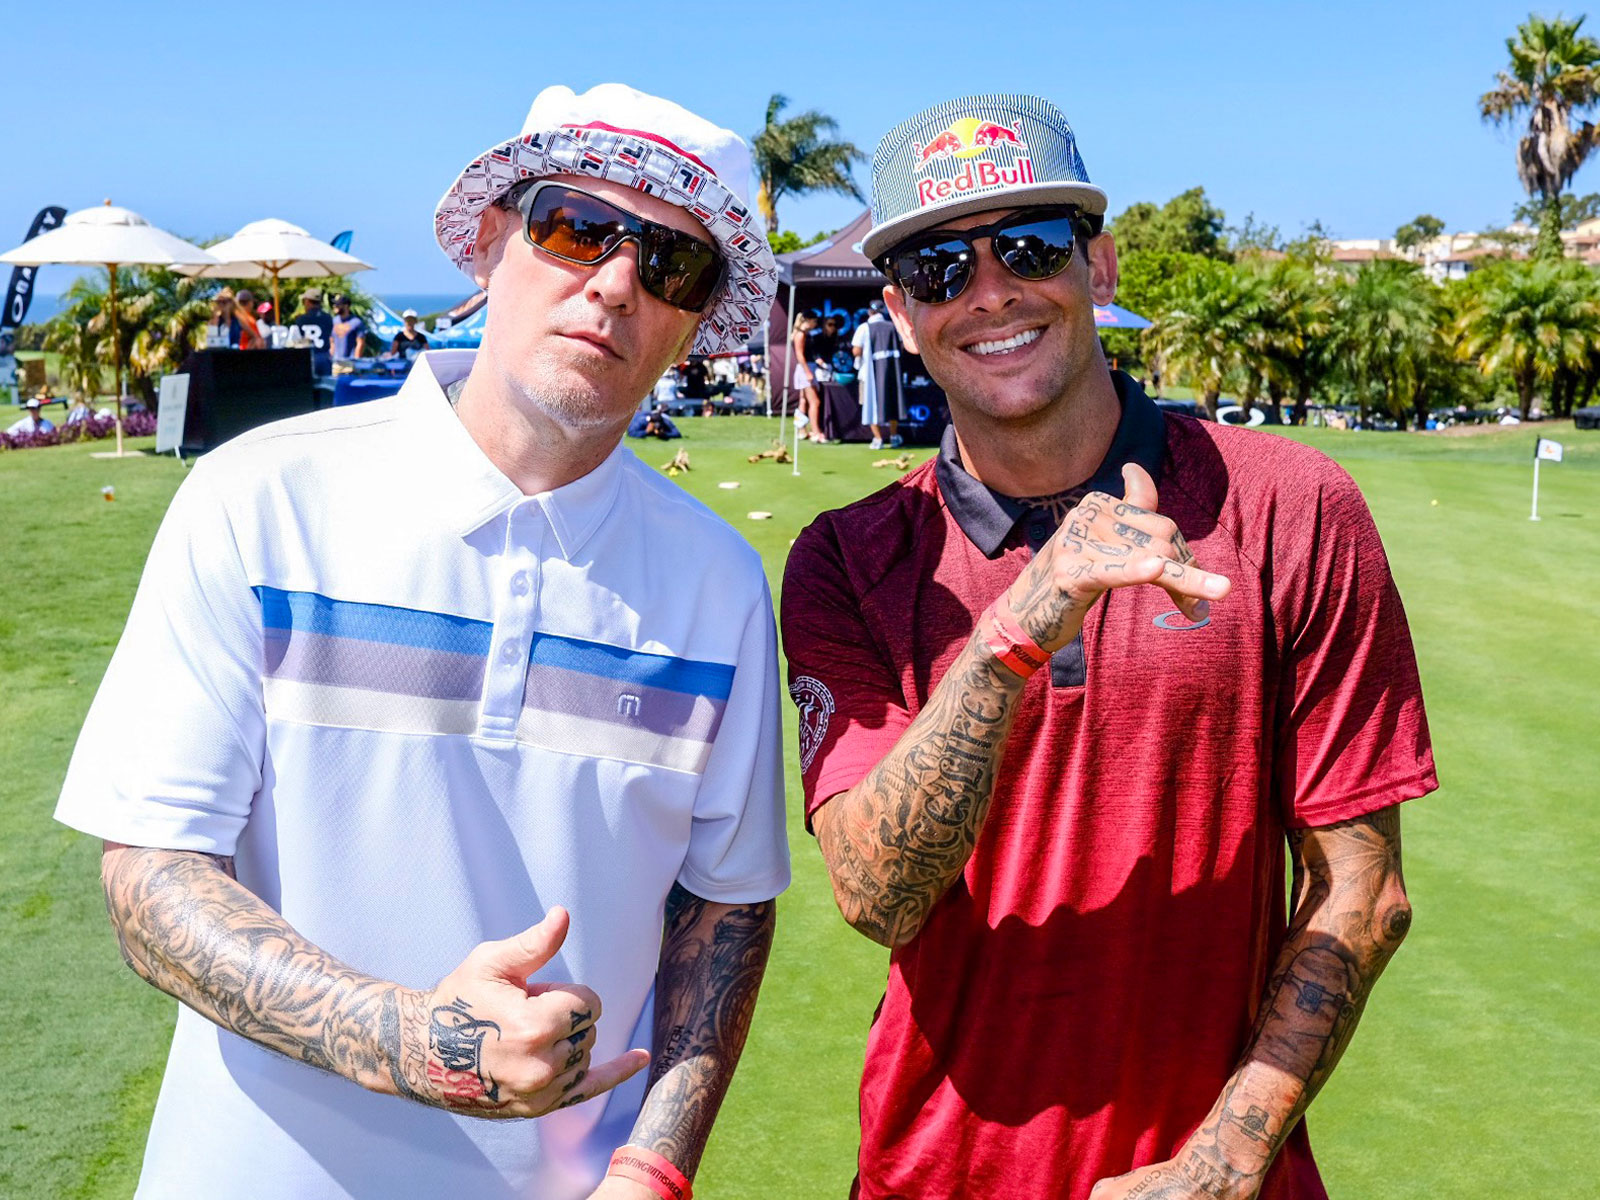 Ryan Sheckler Foundation 12th Annual Charity Golf Tournament